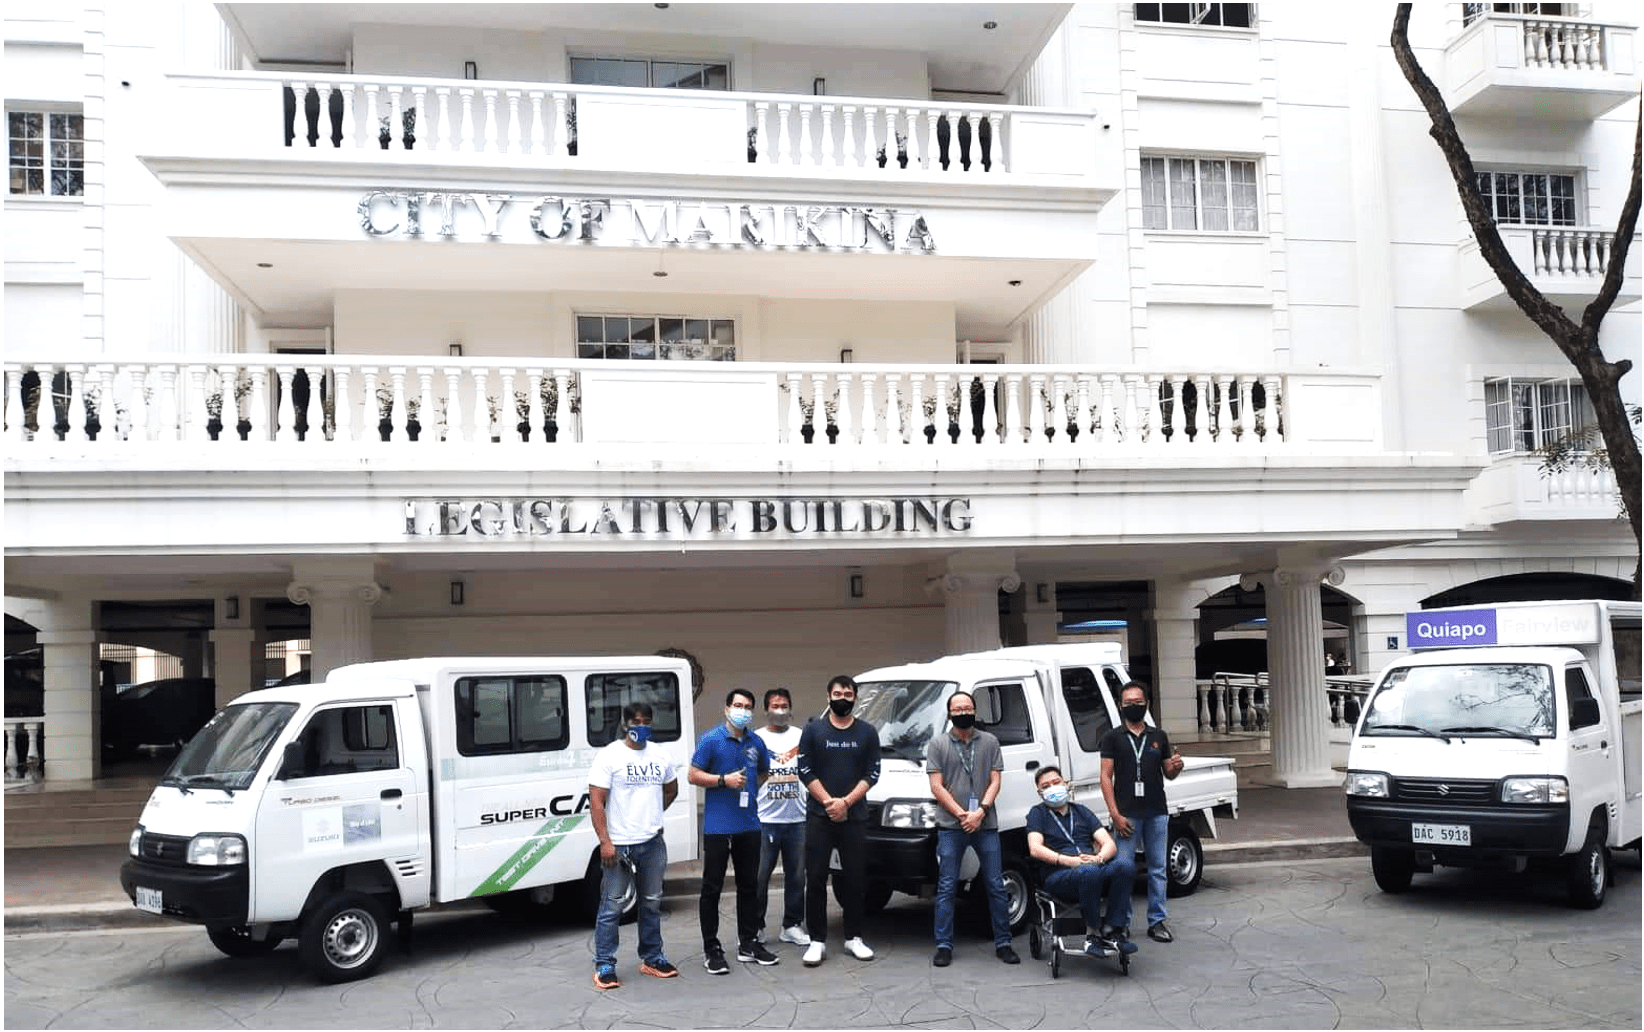 Suzuki shares the gift of mobility as it deploys Super Carry units to the City of Marikina